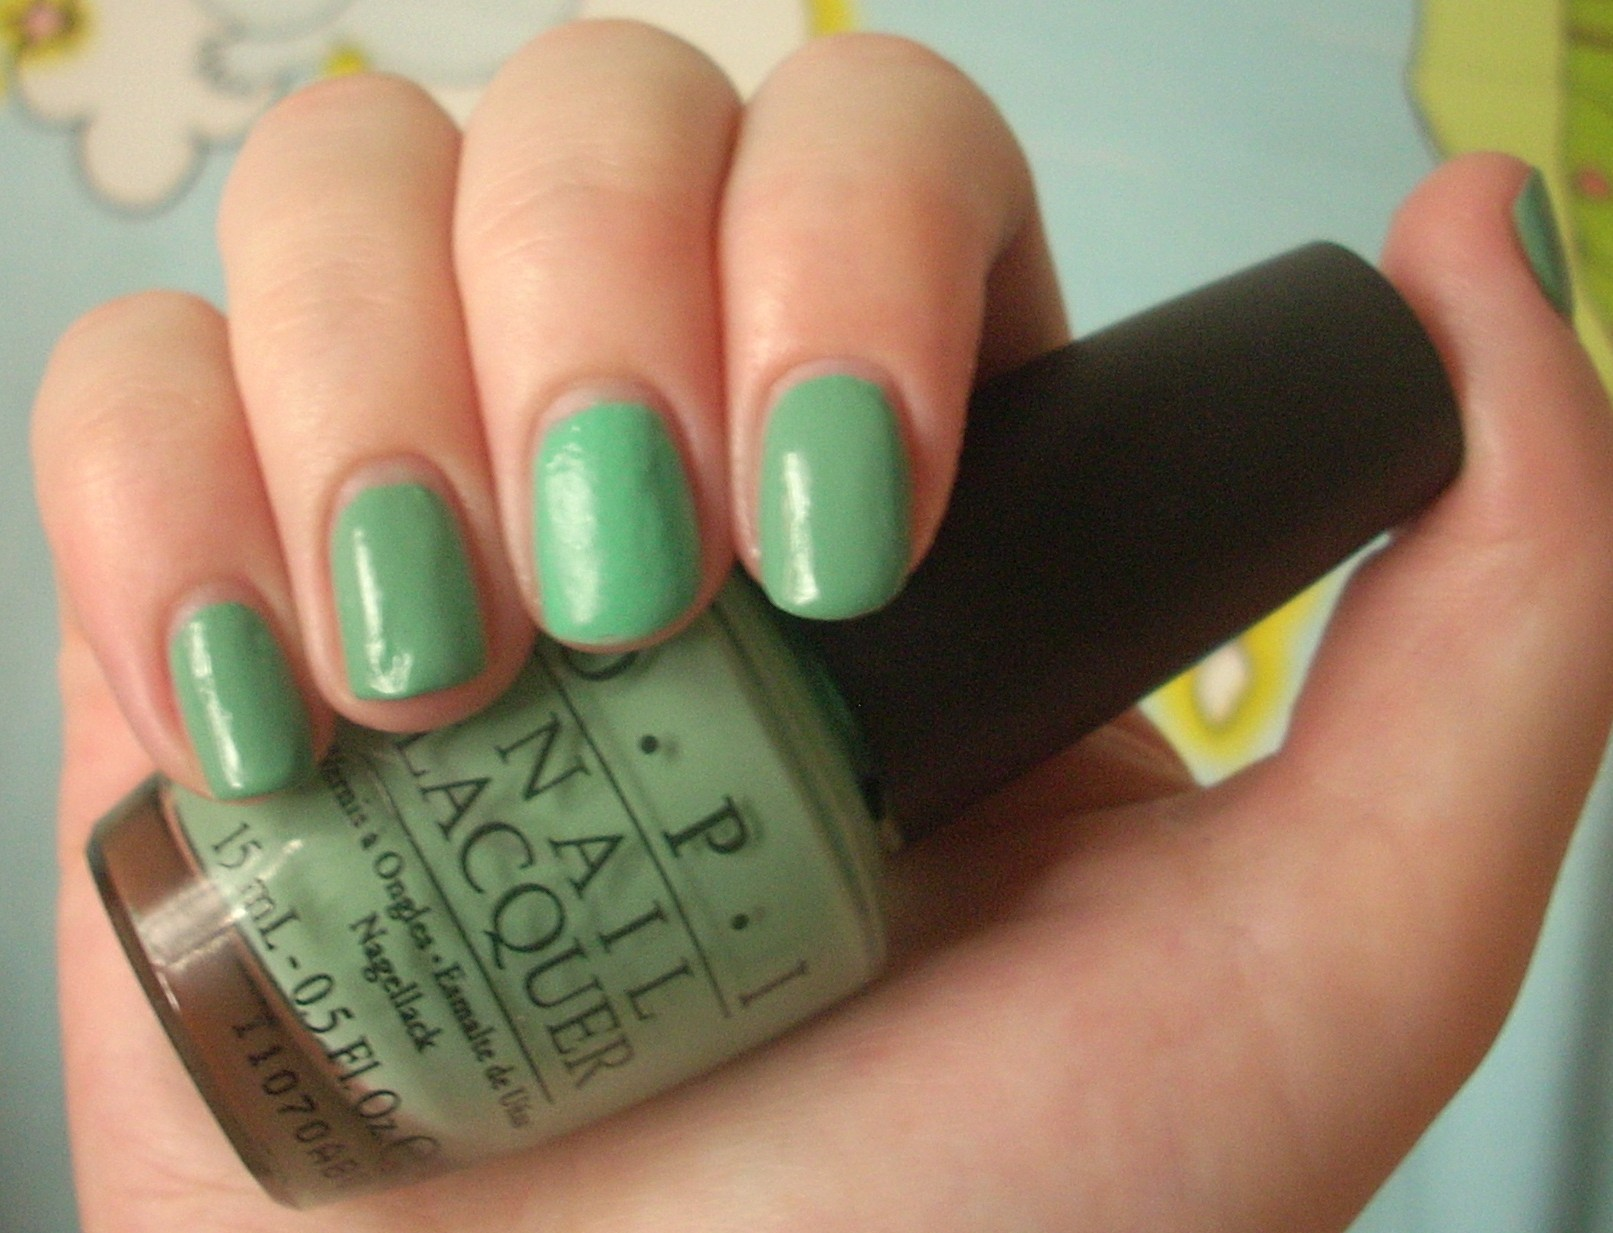 OPI Mermaid\'s Tears nail polish review | Through The Looking Glass